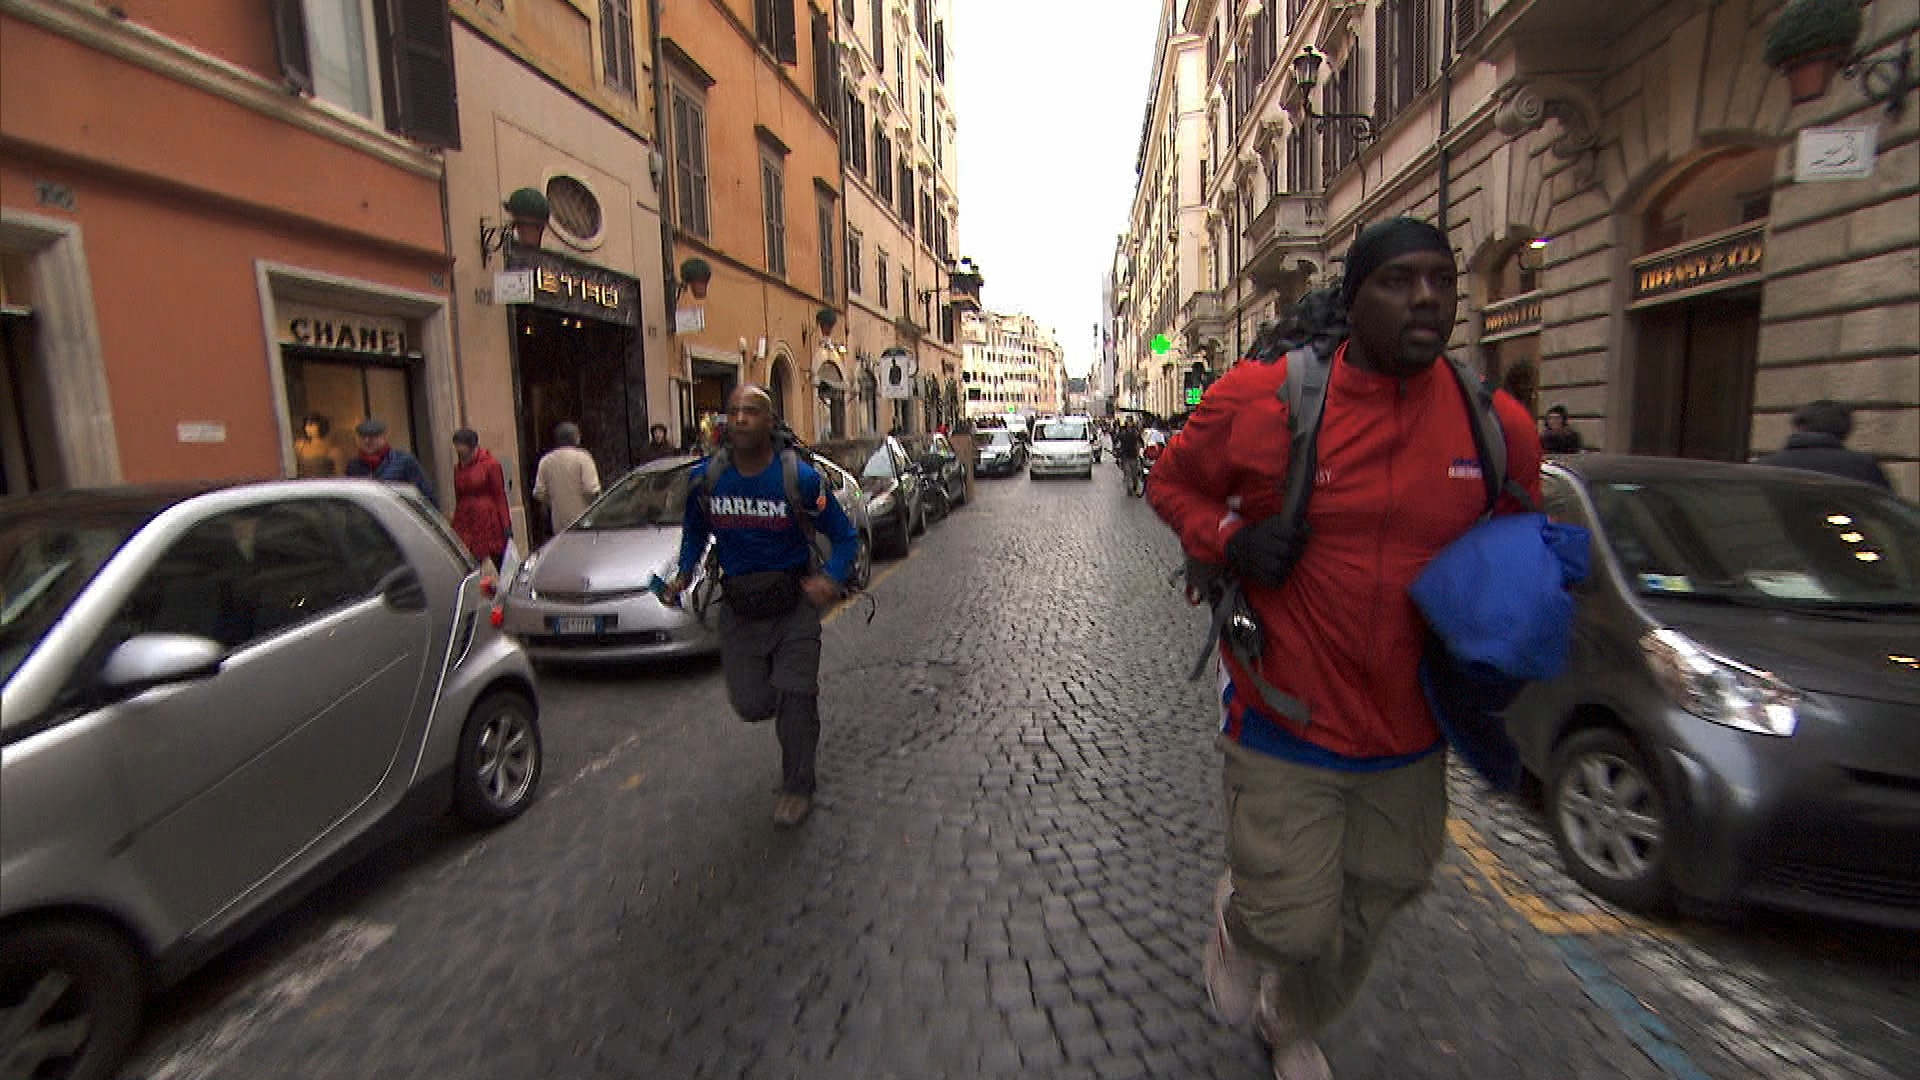 Running through Rome in Season 24 Episode 7